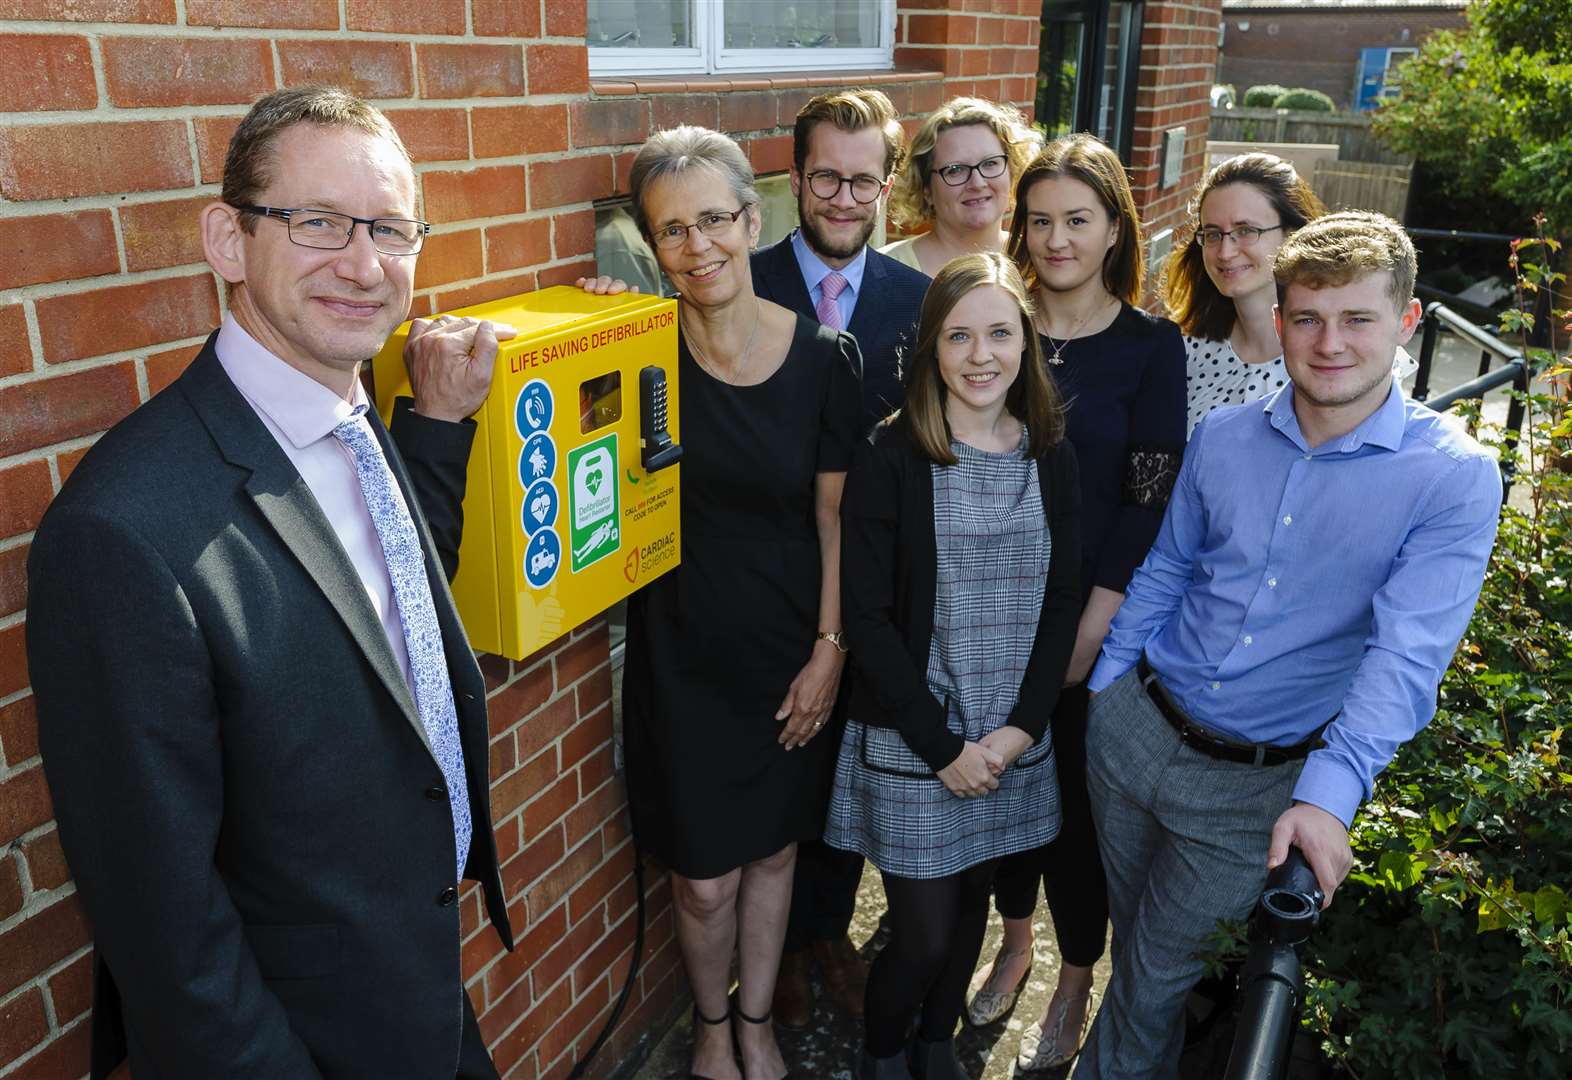 New life-saving defibrillator brings total to five